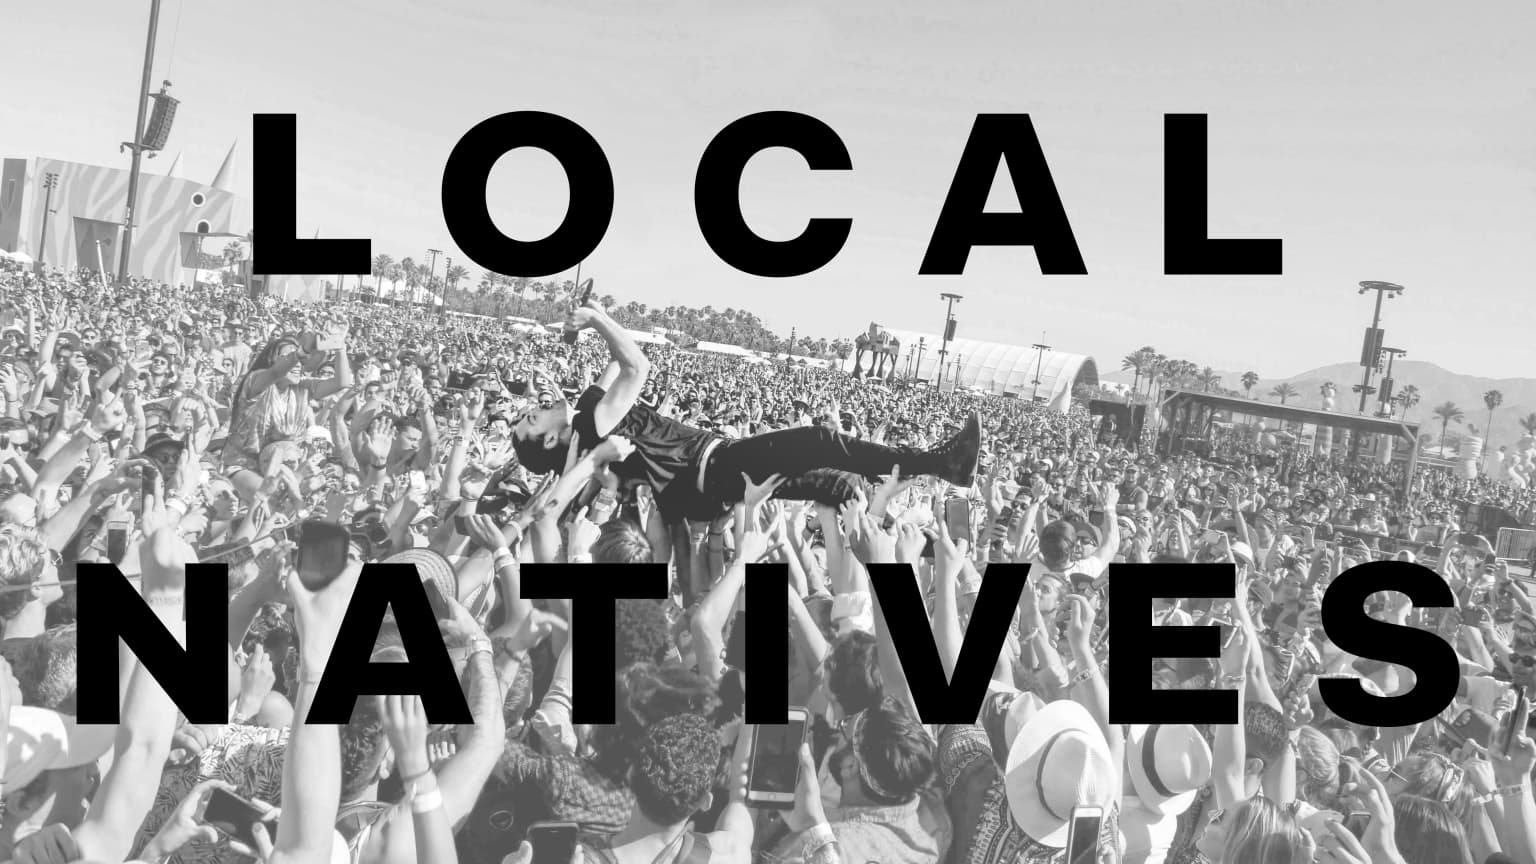 Local Natives: Documentary, Music Video, Social Media